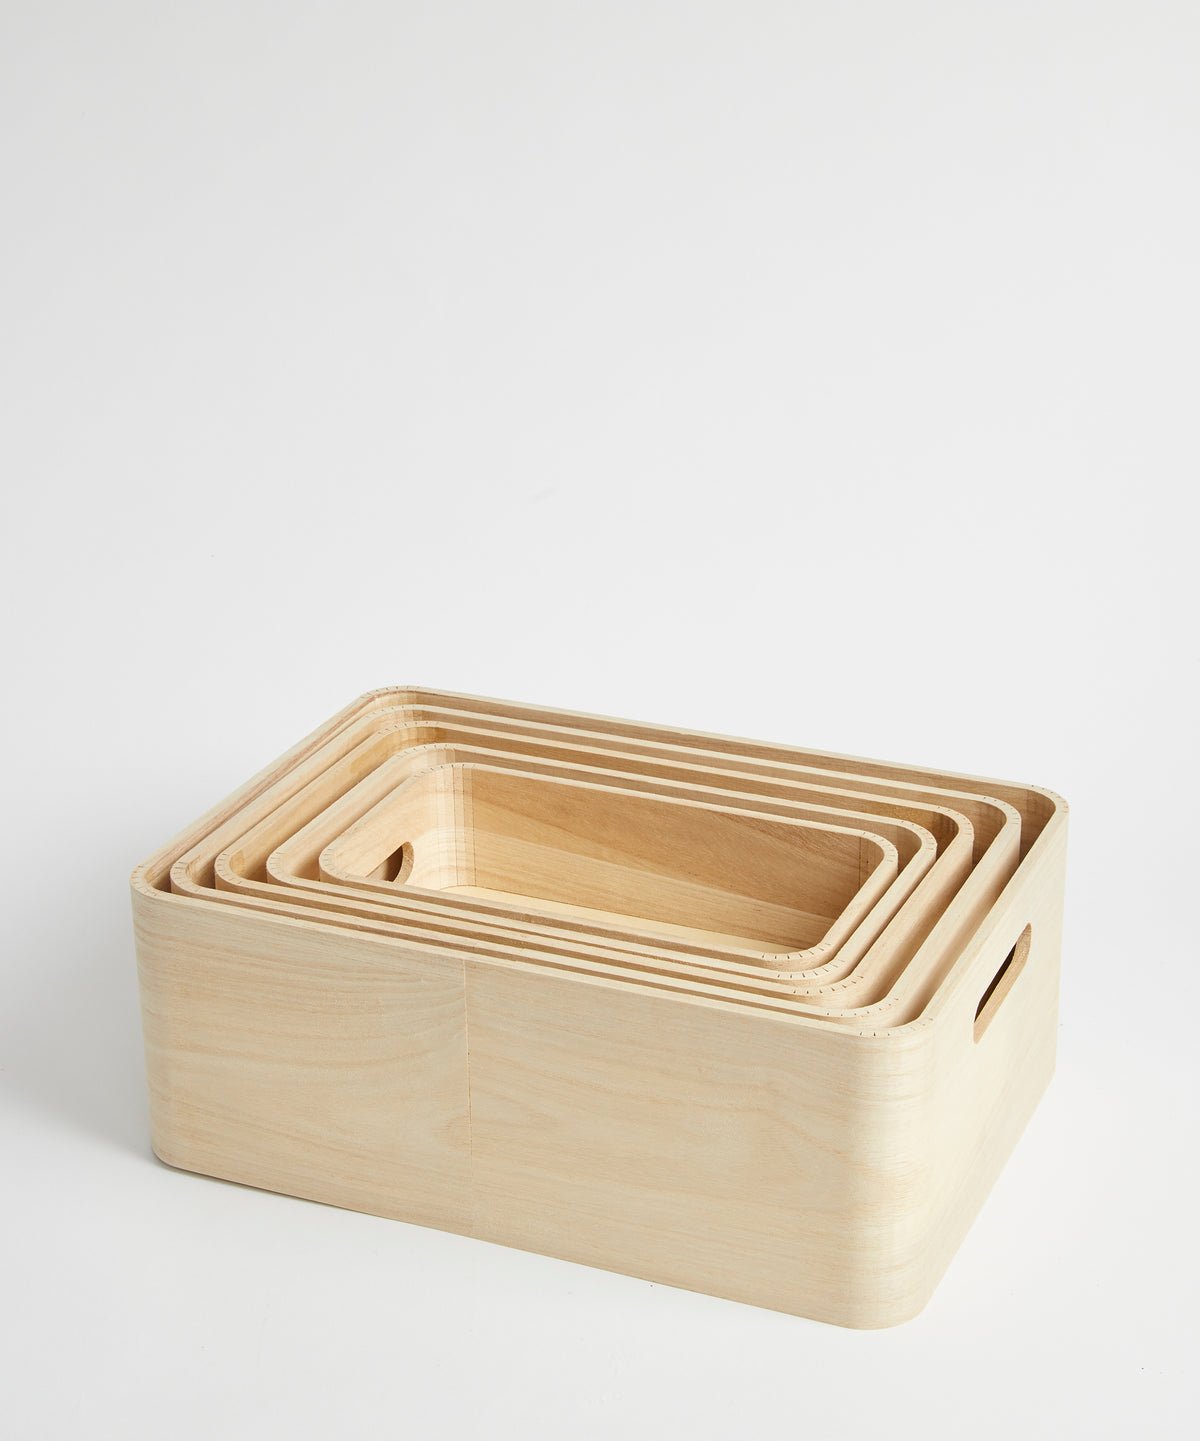 Set of Five Wooden Stacking Storage Boxes